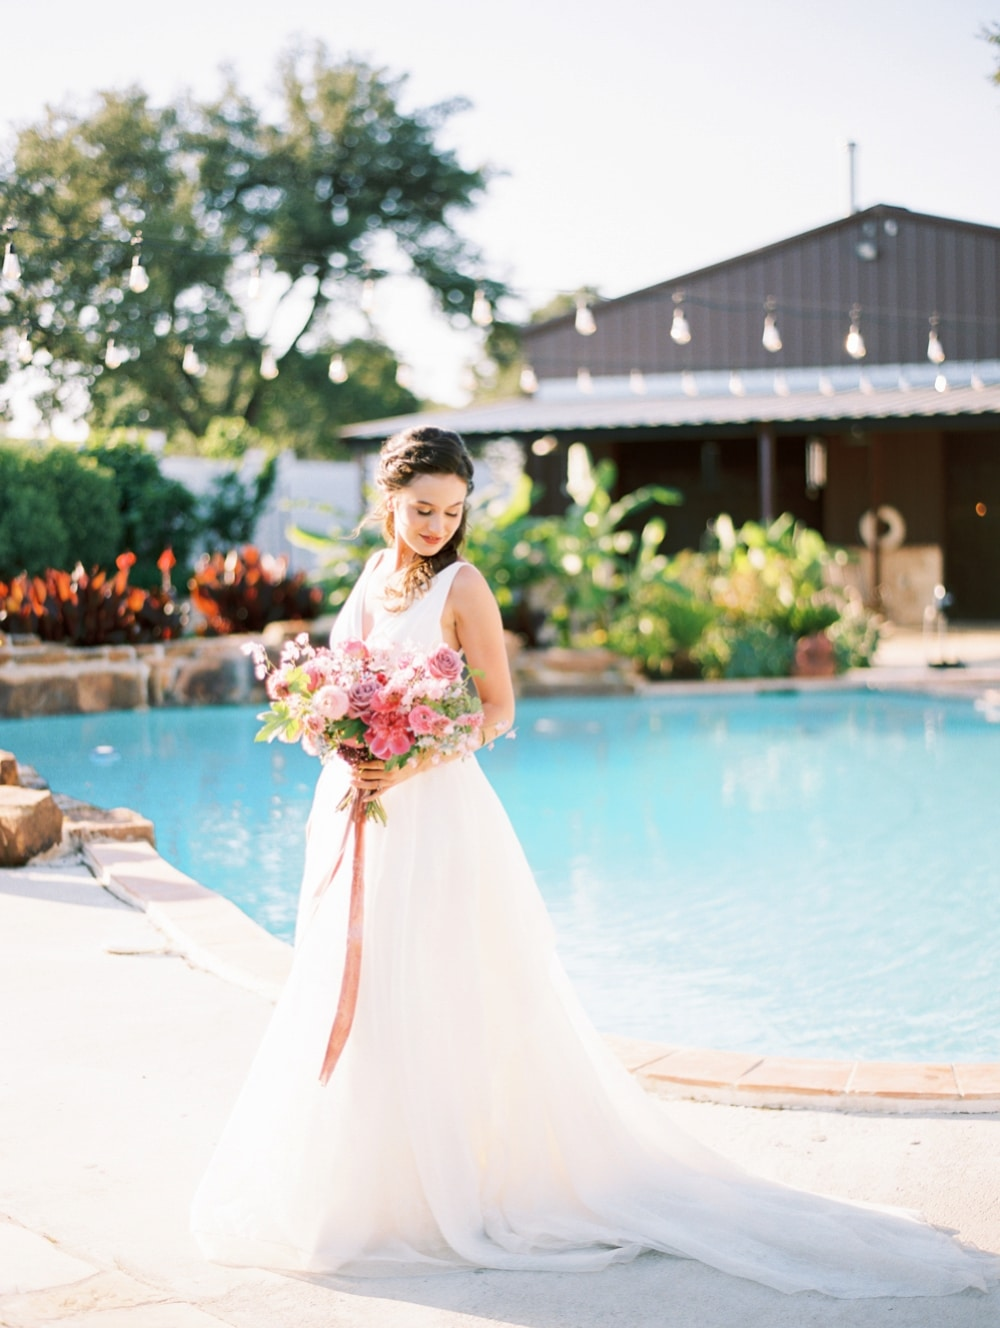 kristin-la-voie-photography-Austin-Wedding-Photographer-58